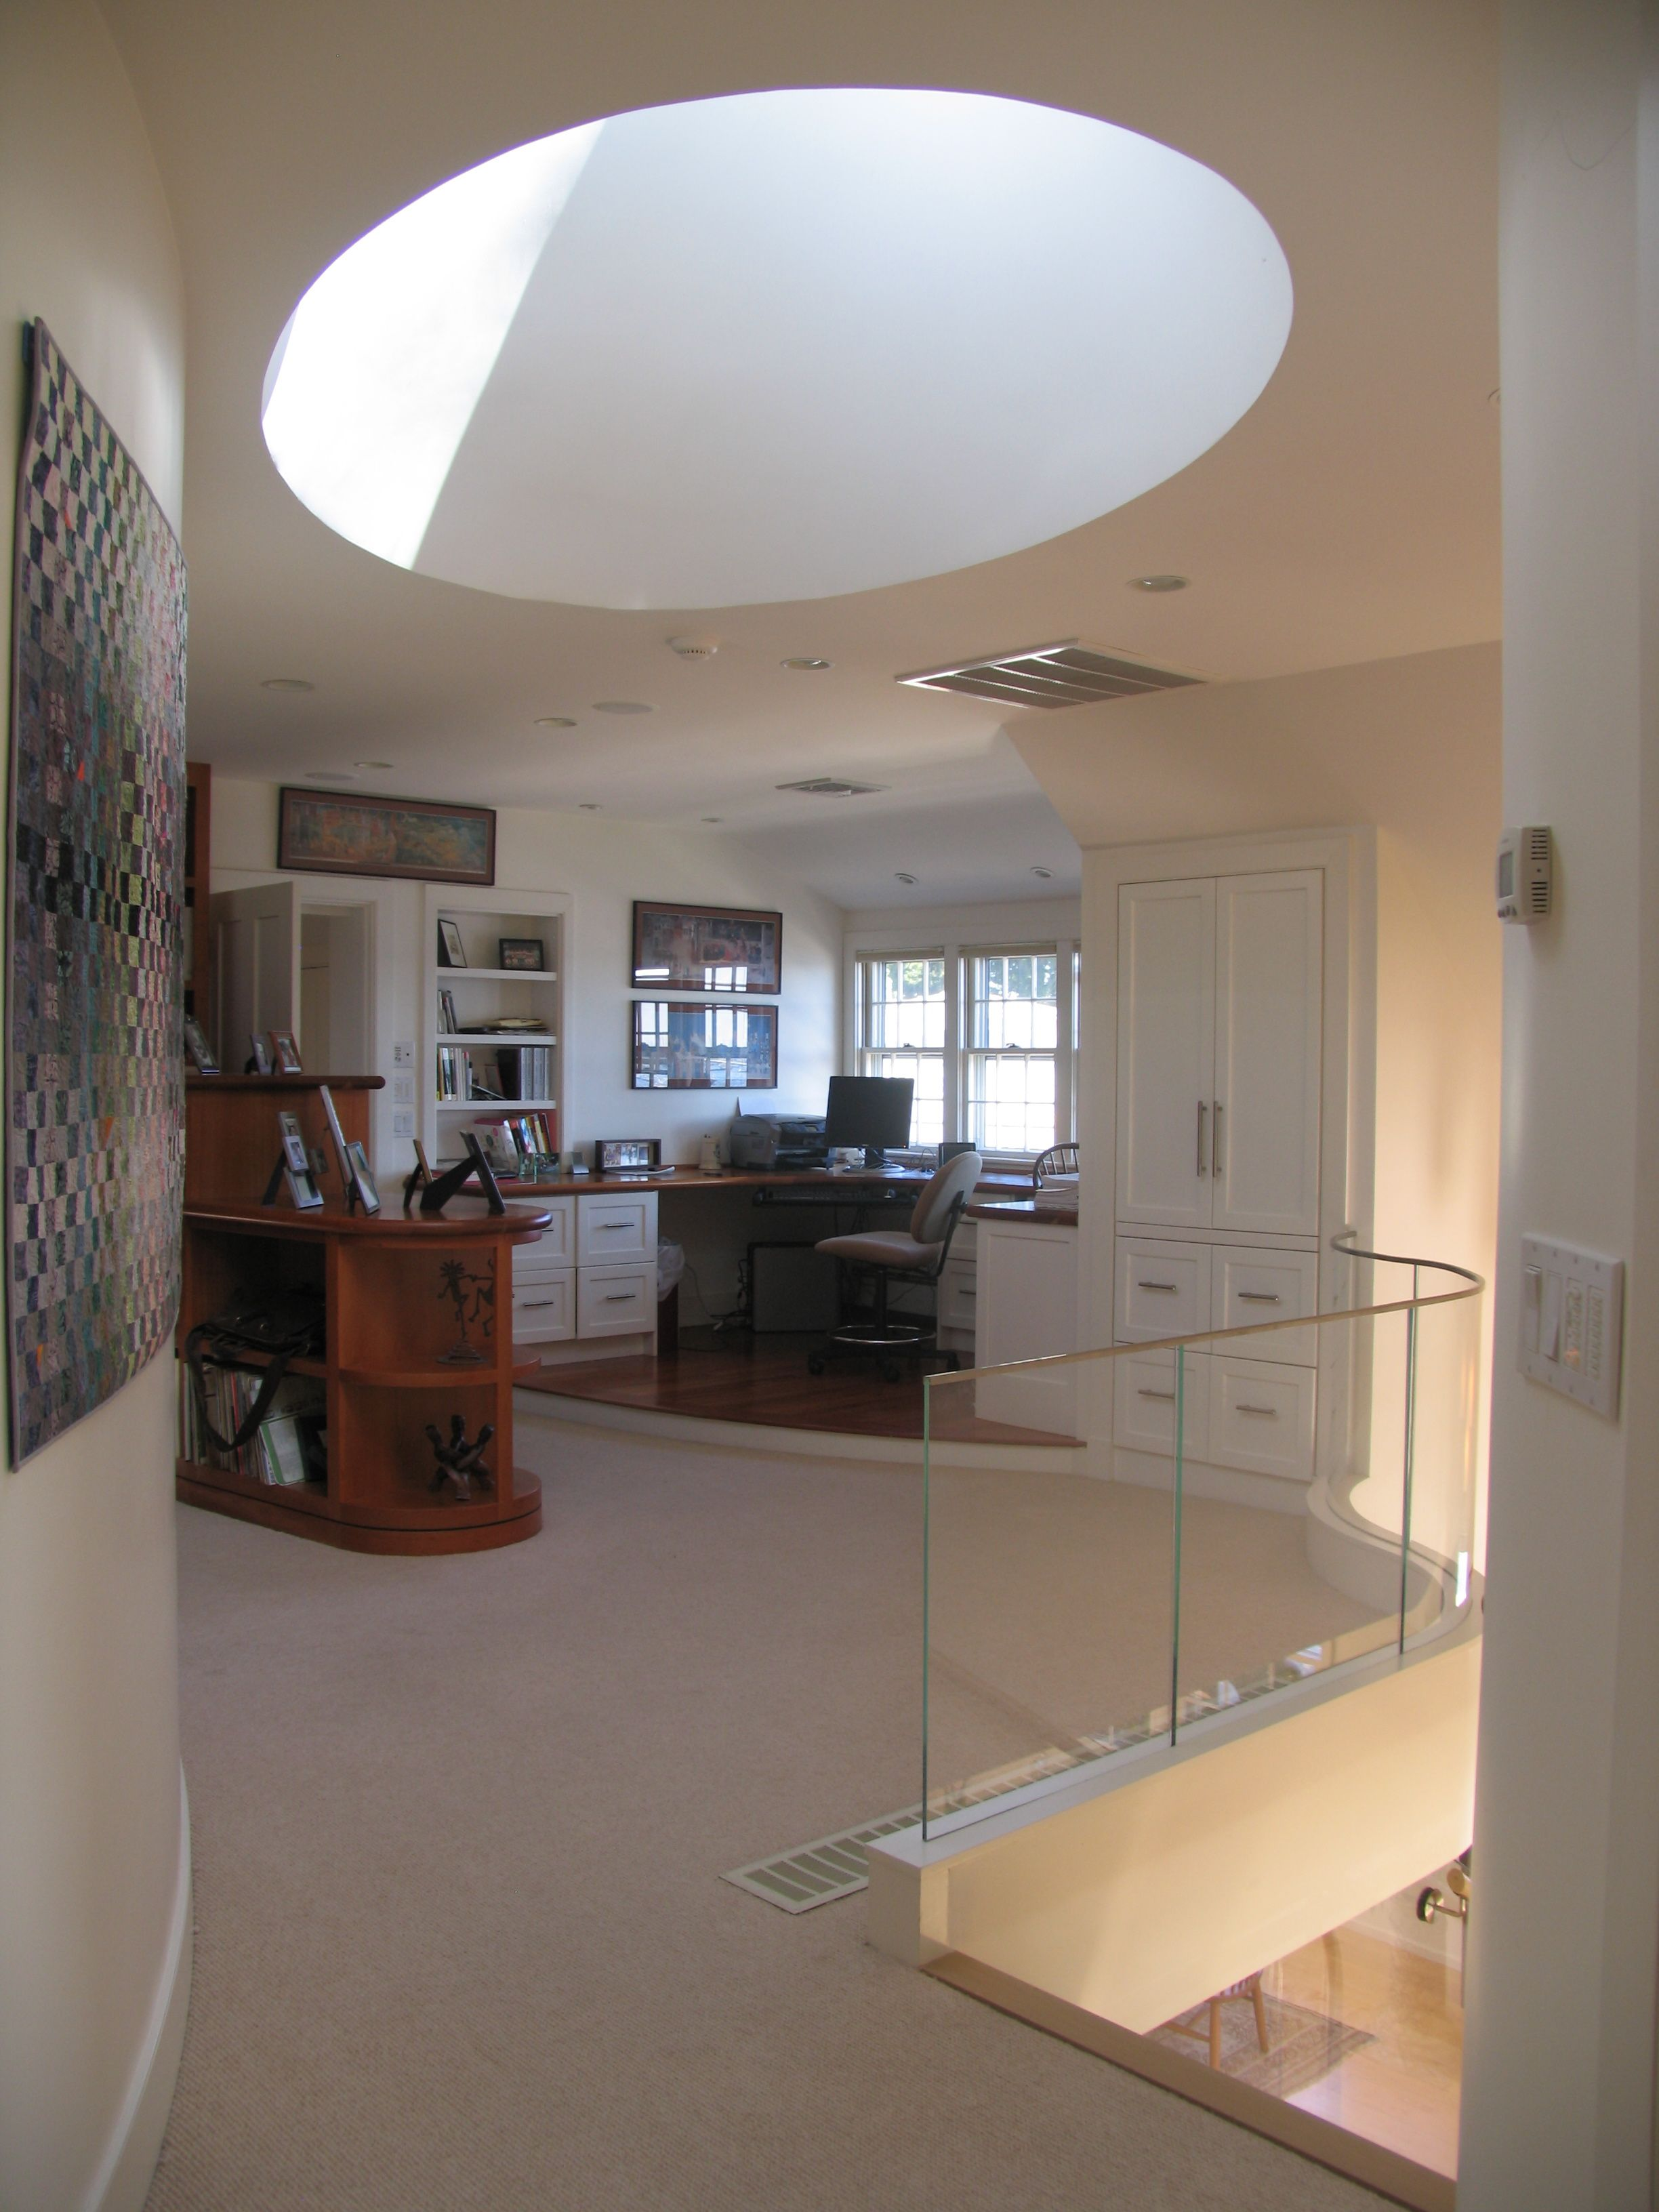 Oval Skylight and Second Level Home Office by Michael McCloskey Design Group